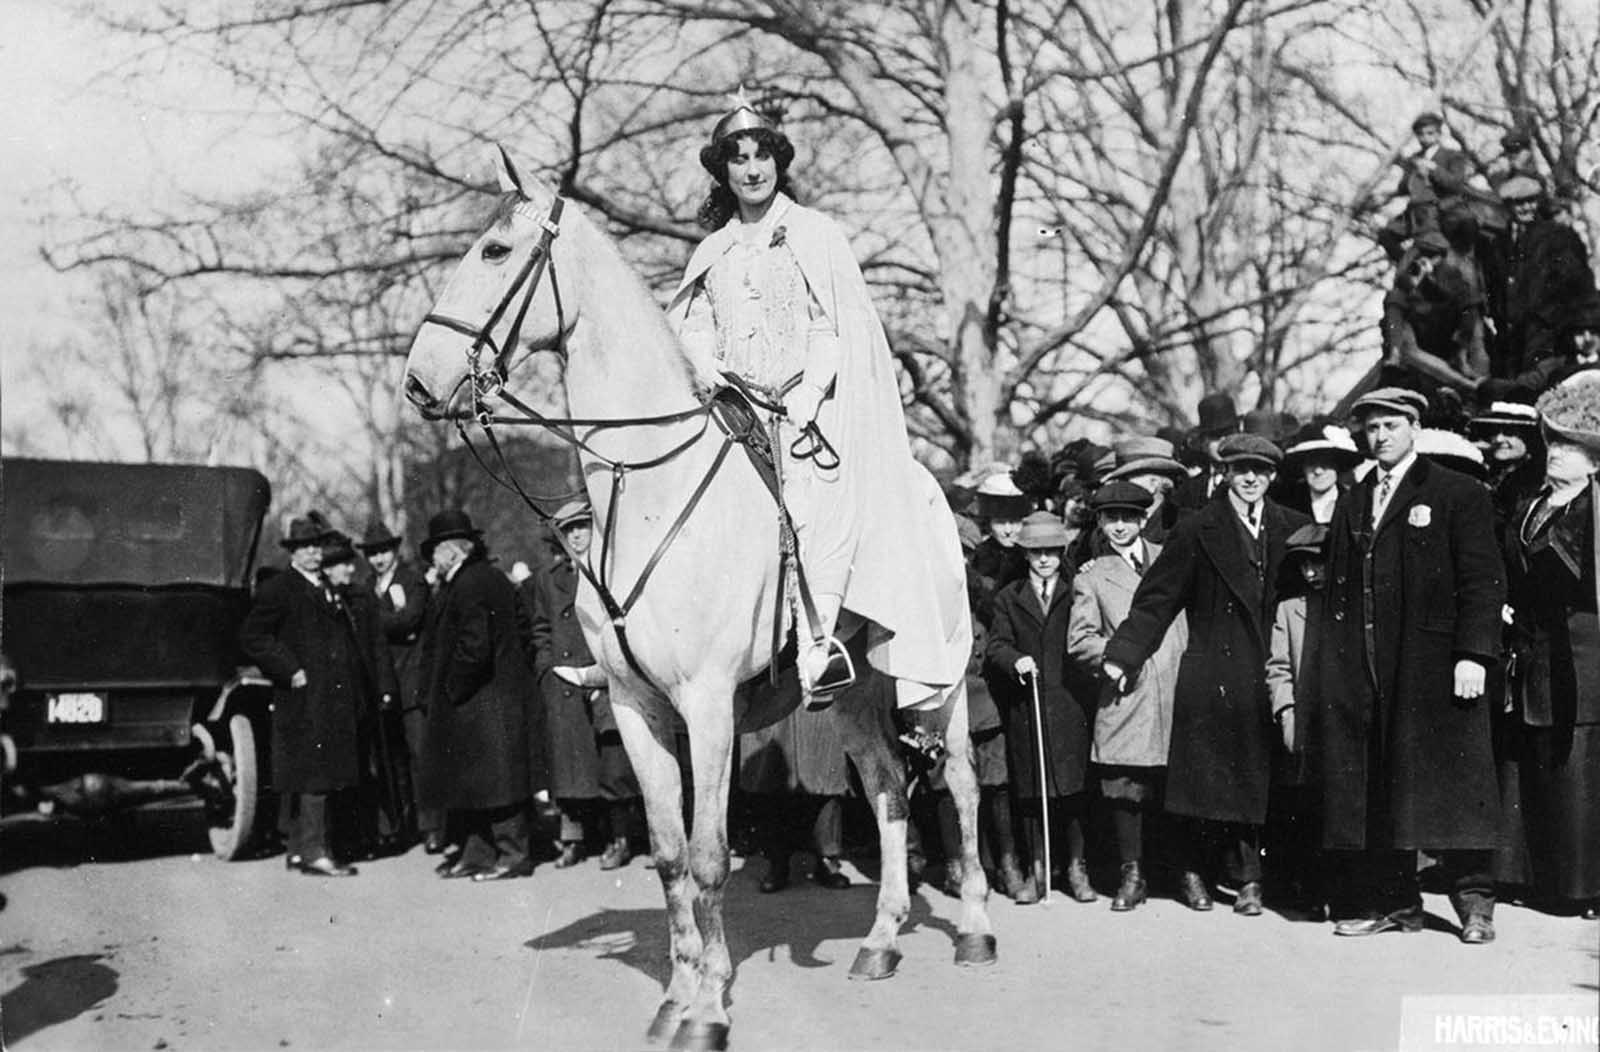 Lawyer Inez Milholland Boissevain prepares to lead the Suffrage Parade, on March 3, 1913.